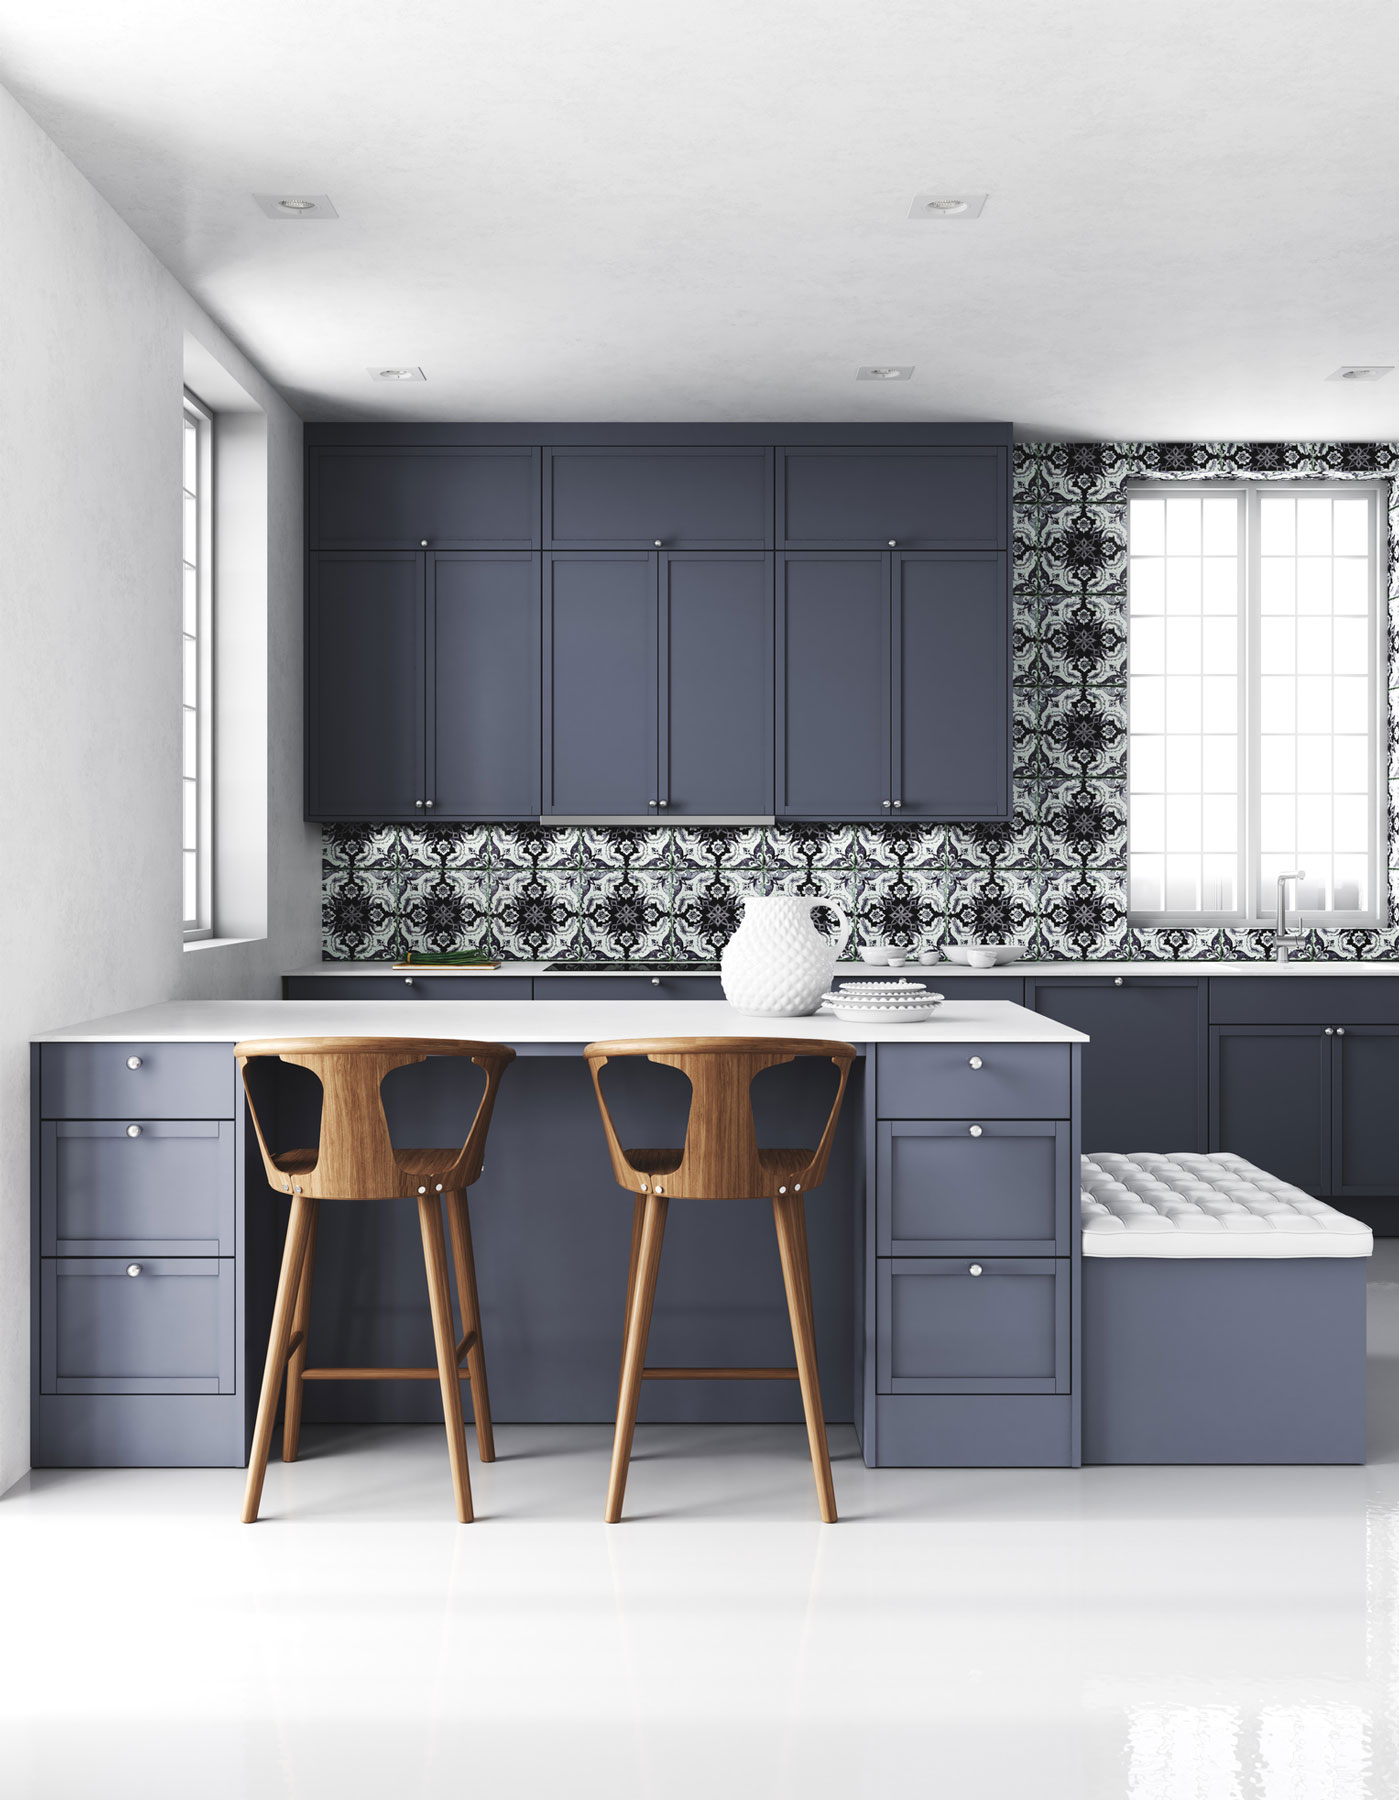 Kitchen Cabinets Painted Grey 7 Kitchen Cabinet Colors We Can T Stop Swooning Over Real Simple